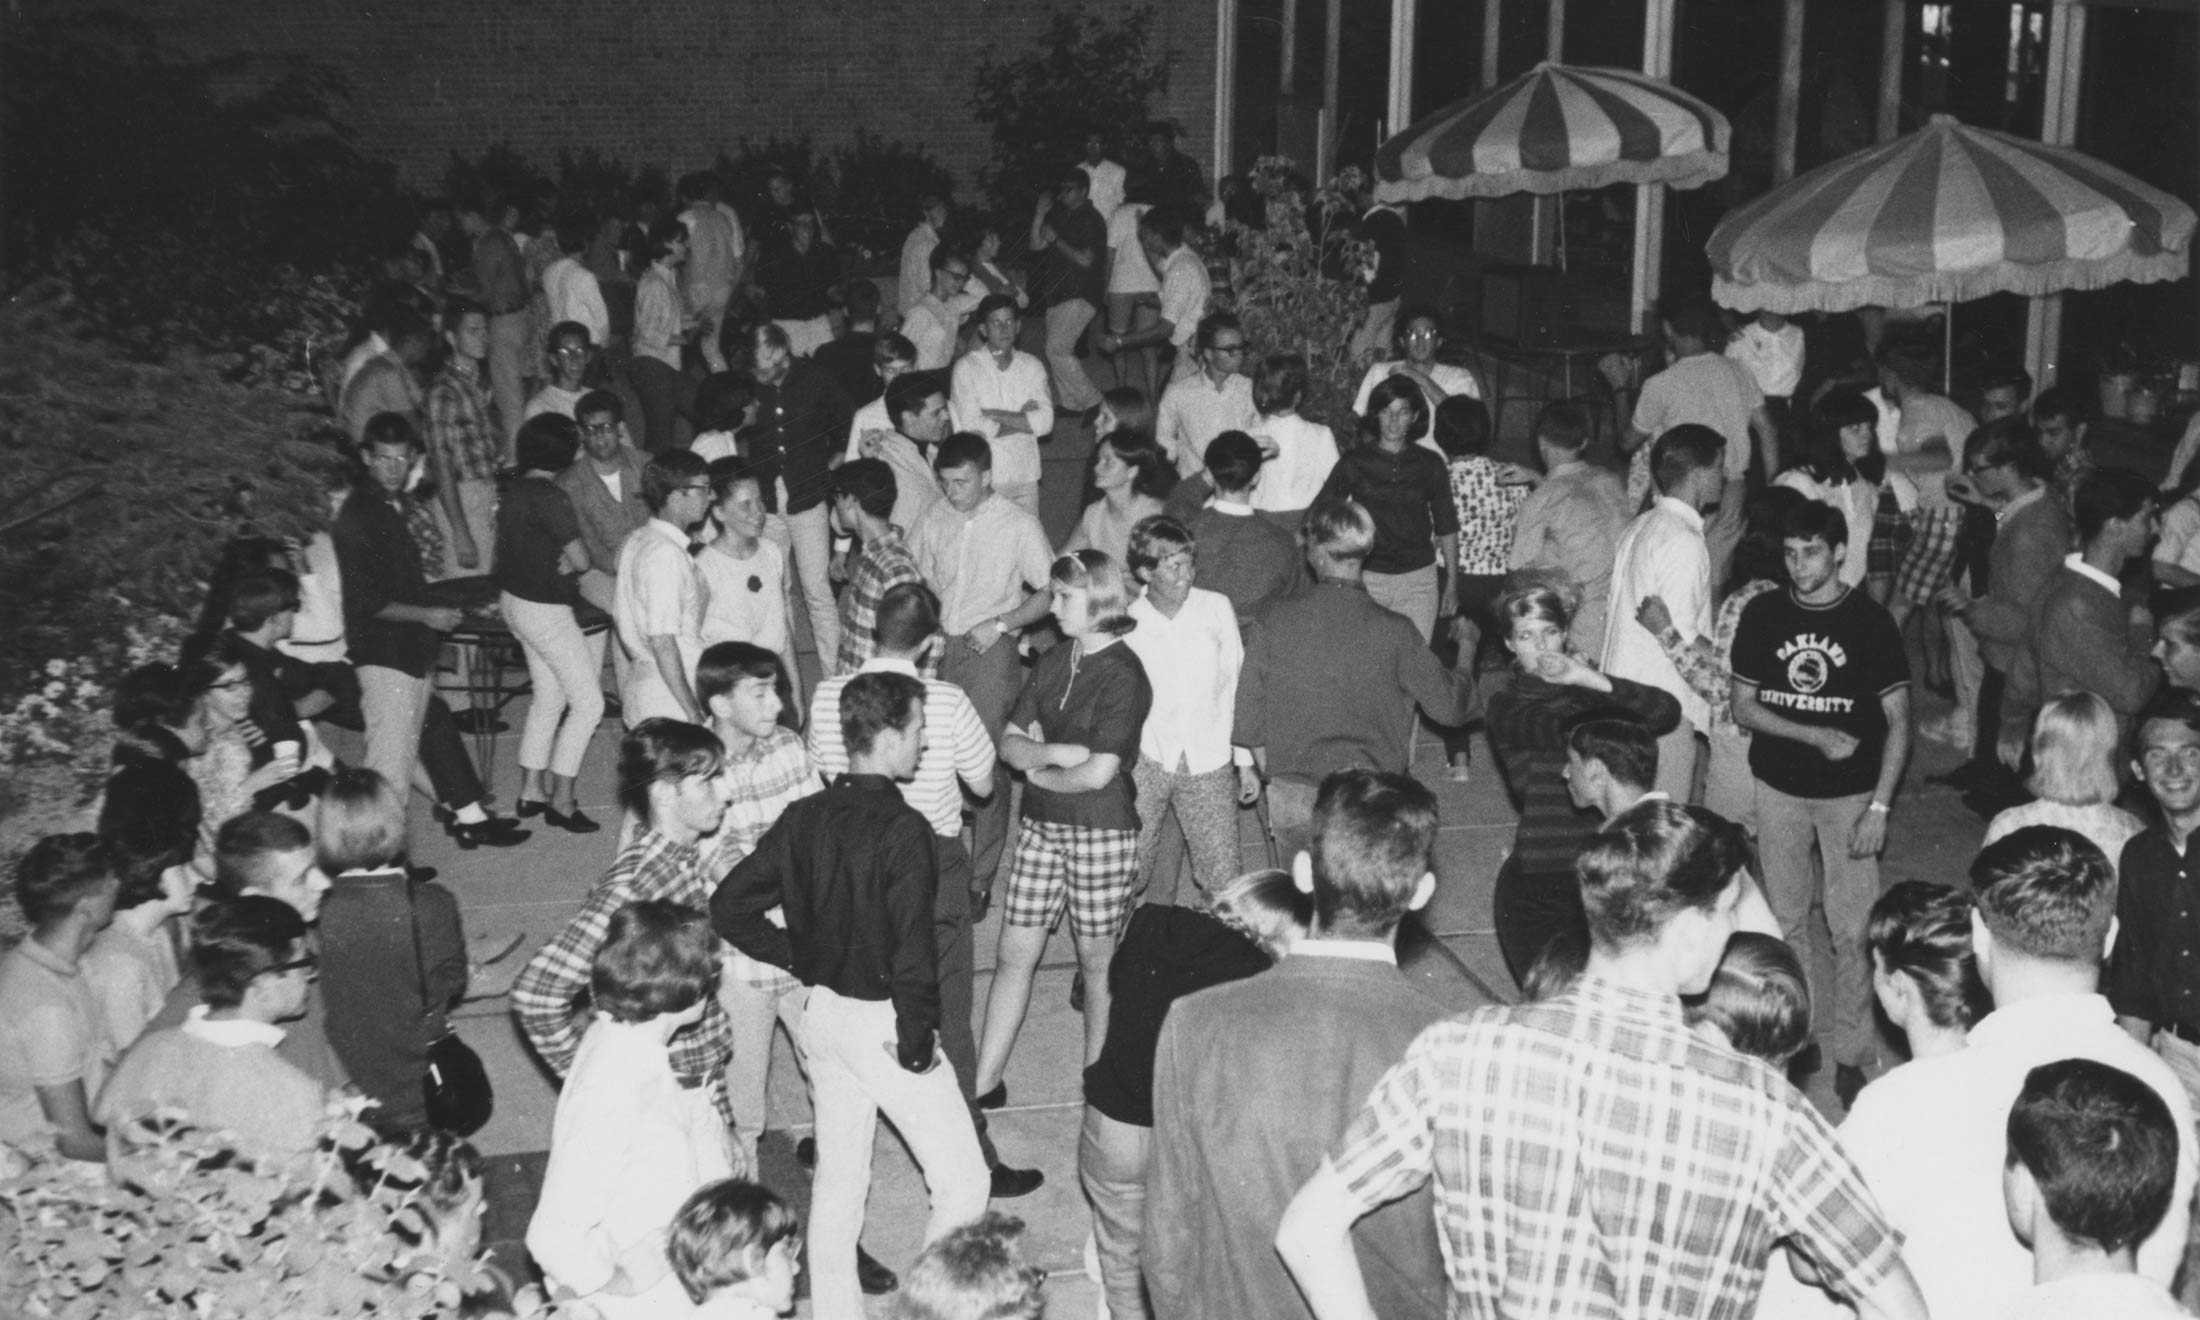 Party held on the terrance of the Oakland Center